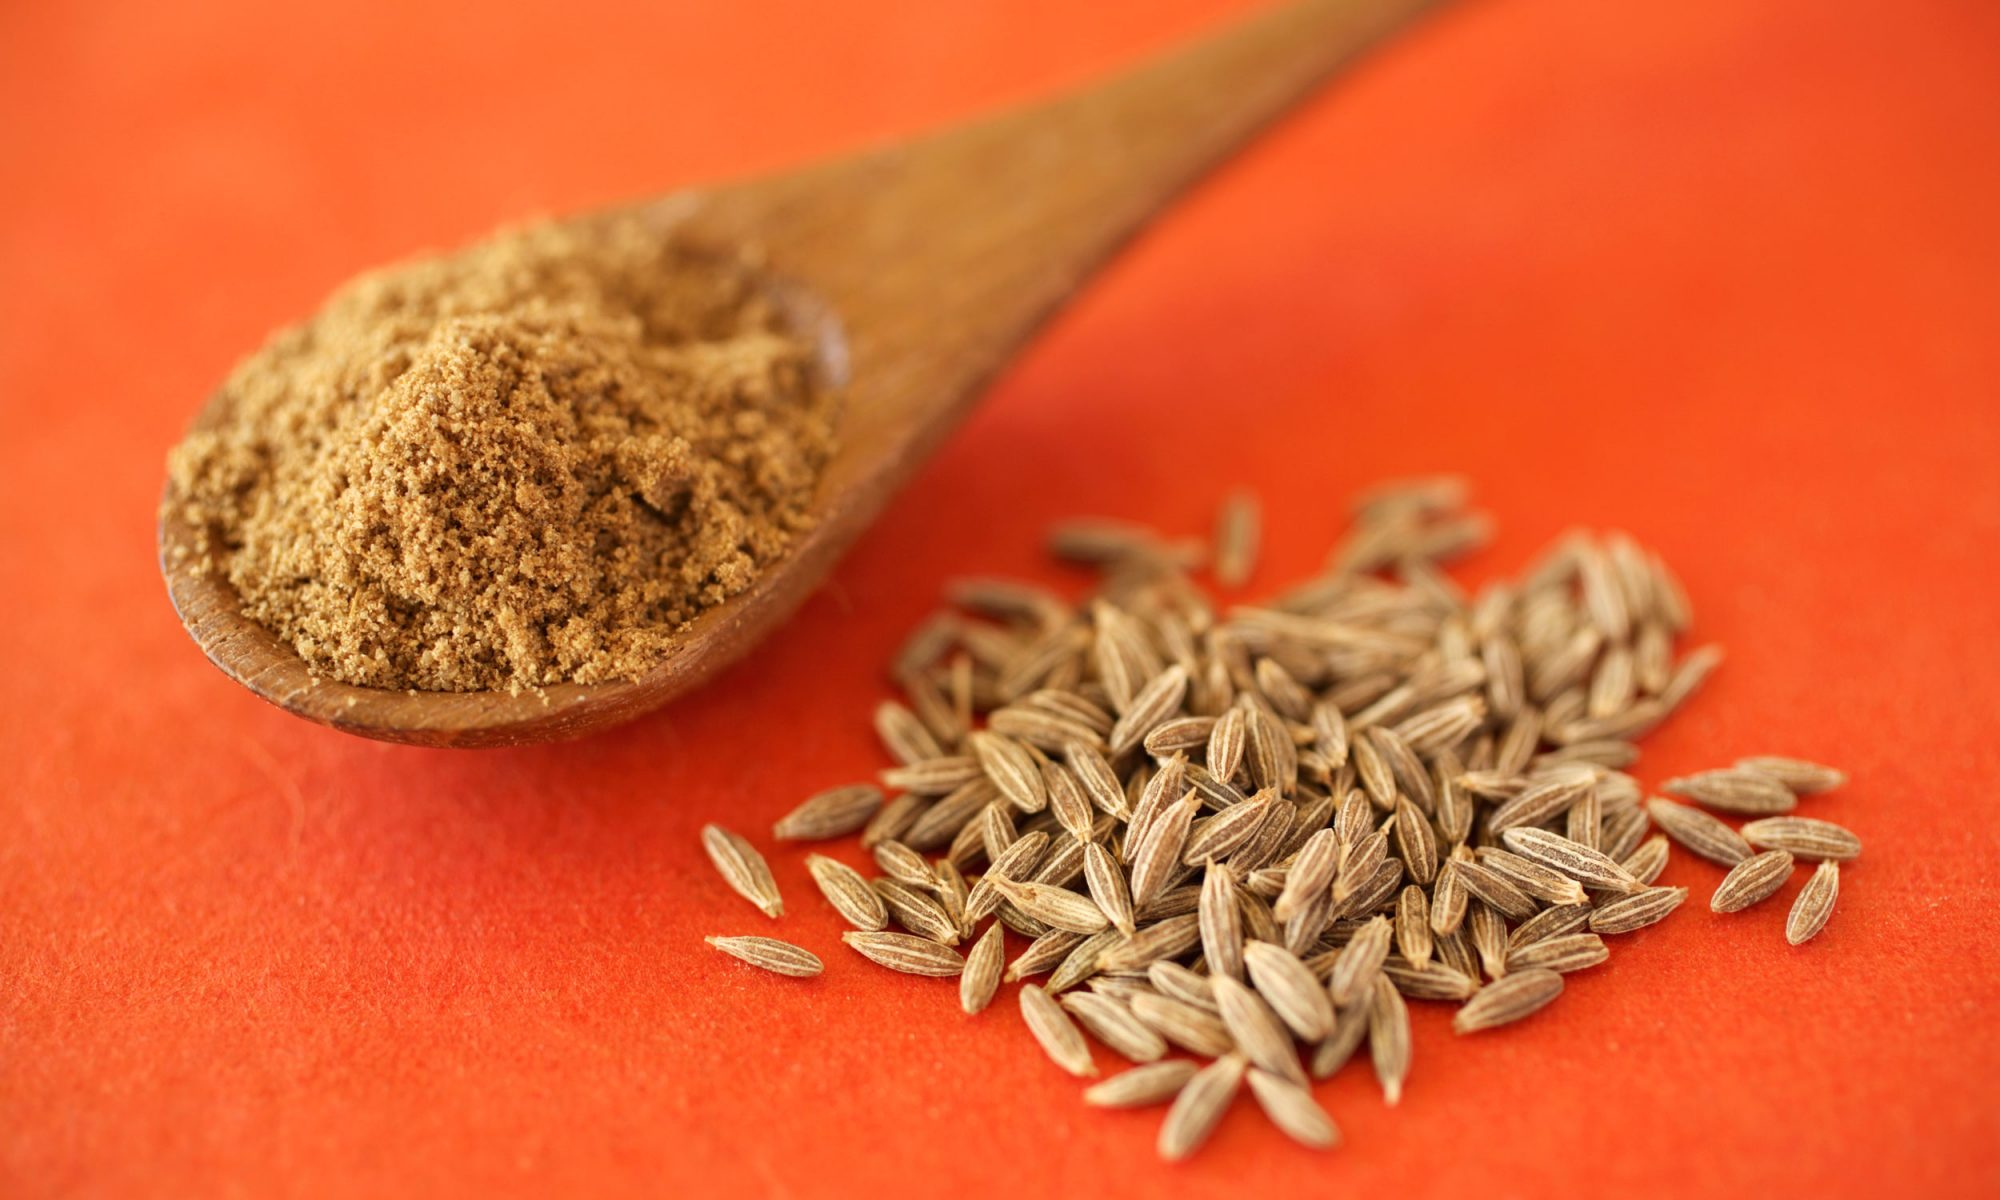 EC: Your Cumin Might Be Contaminated with Lead